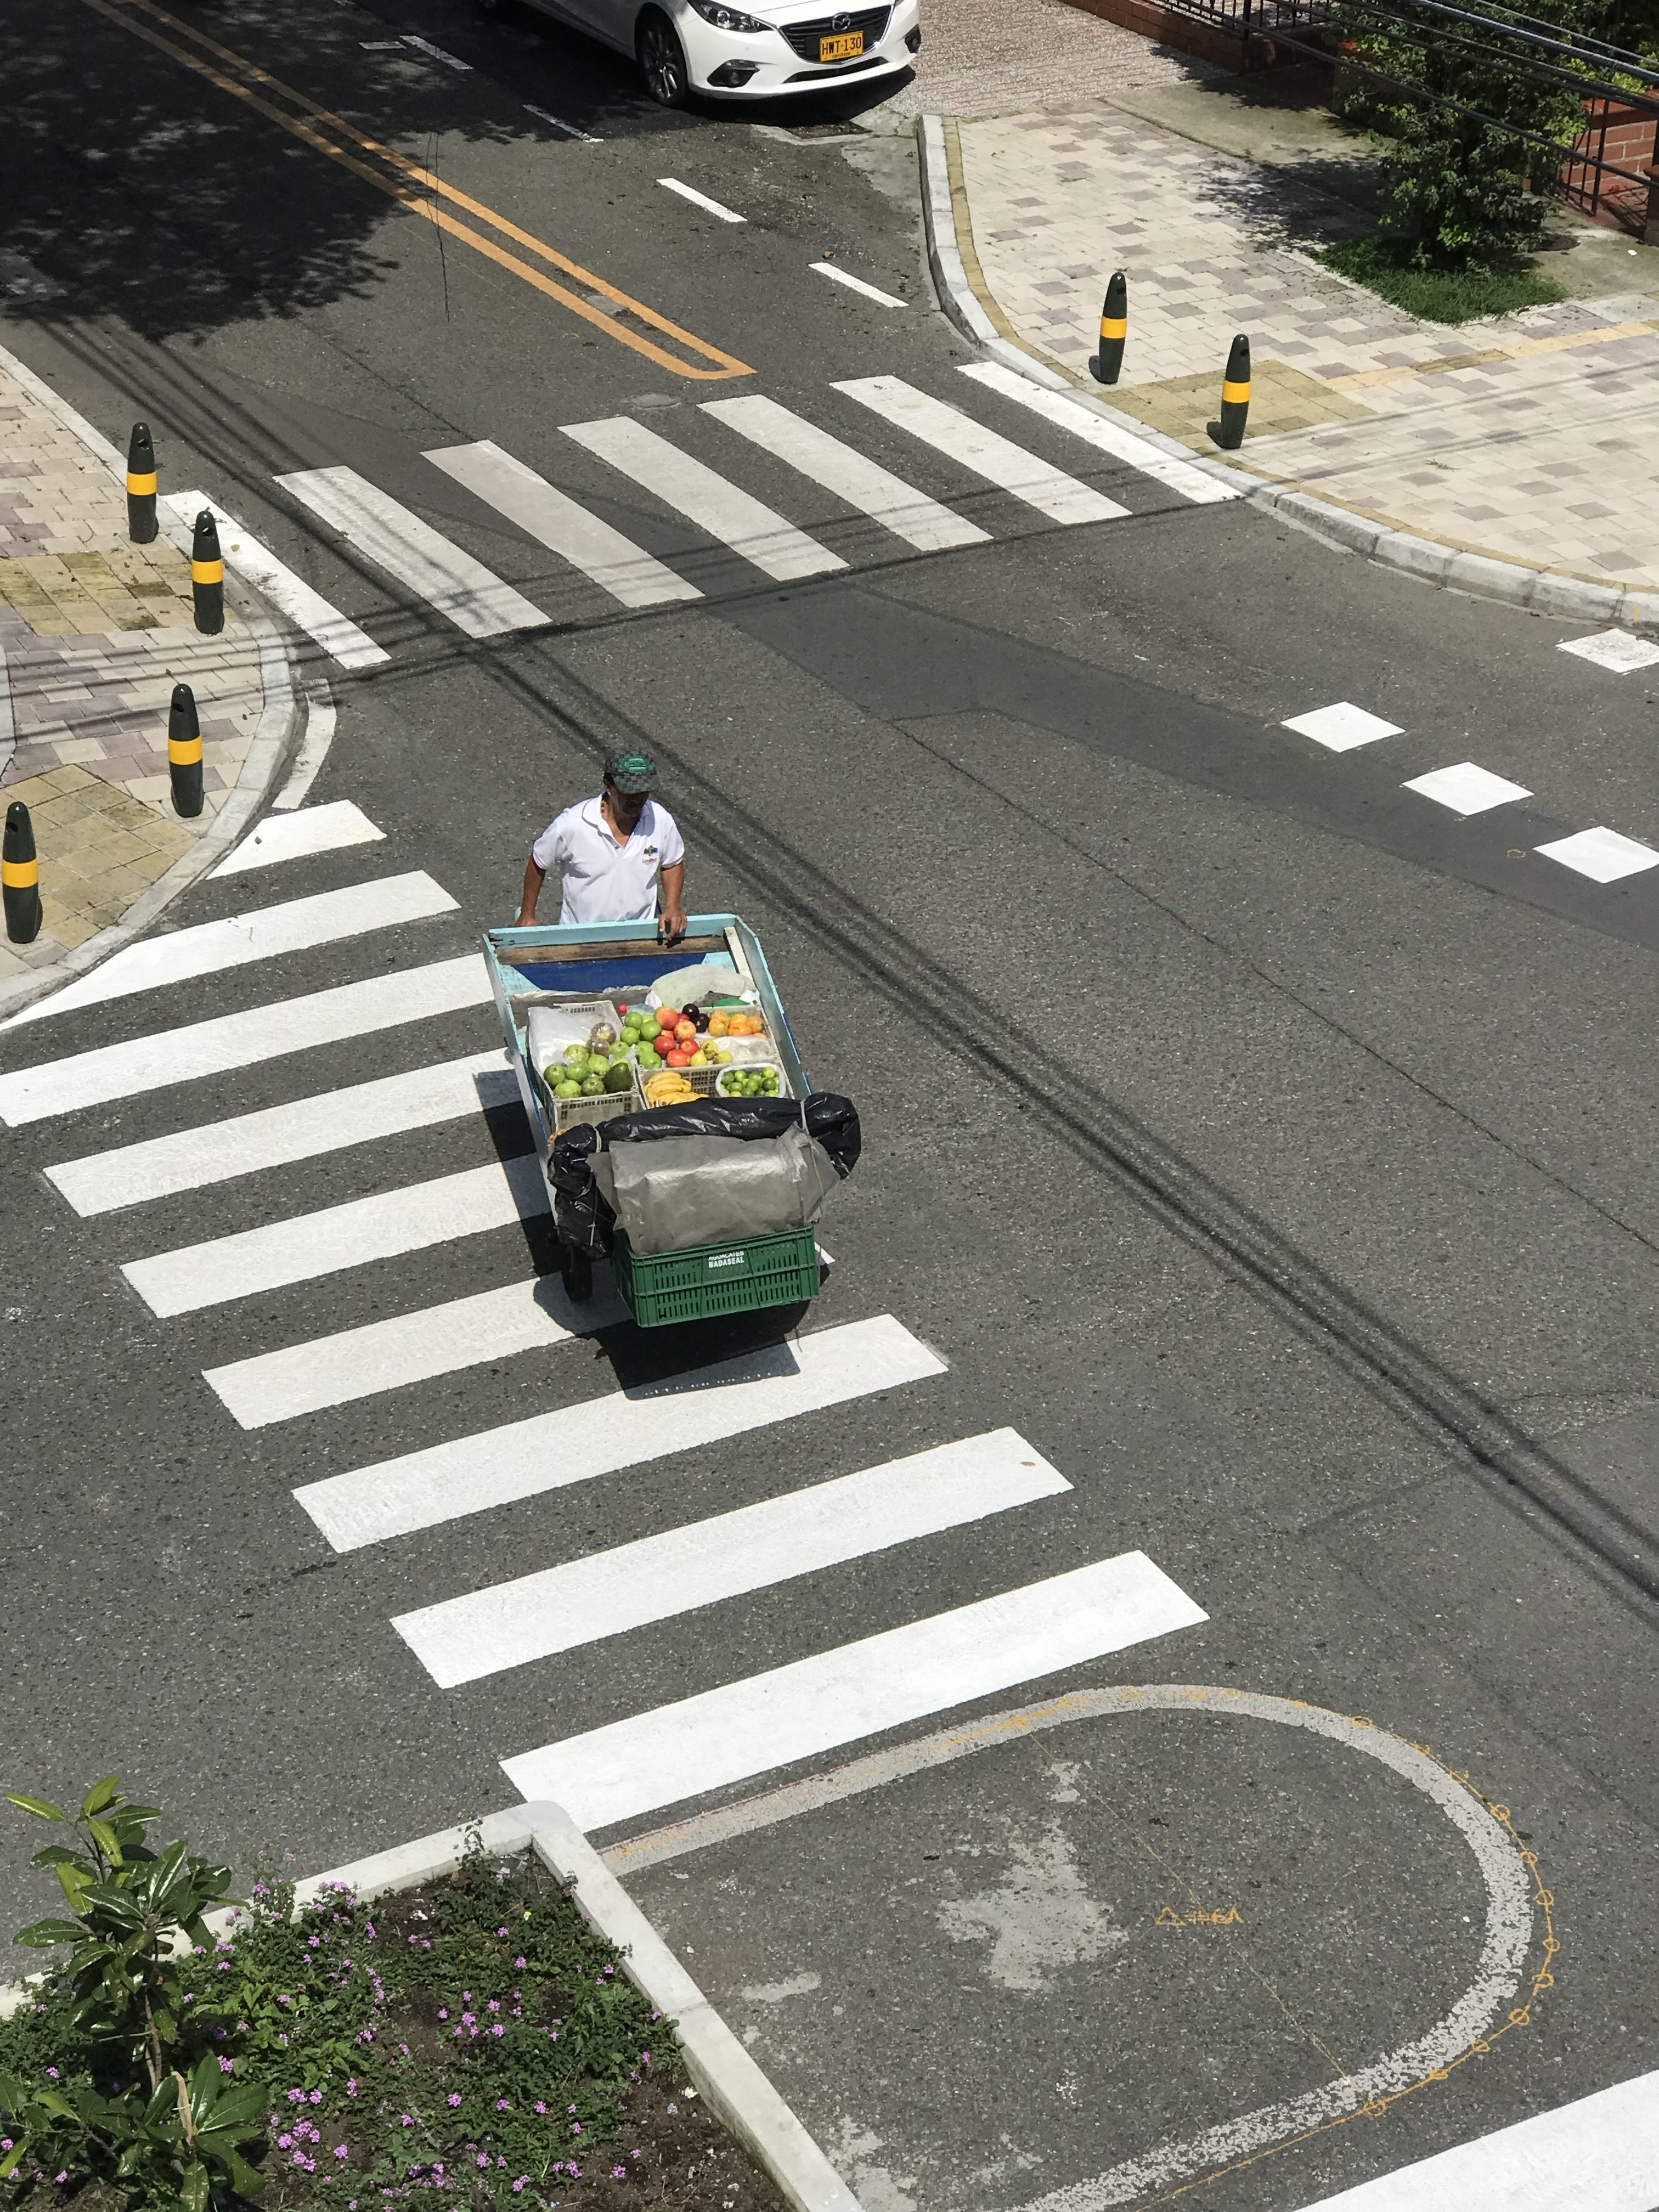 Street vendor walking across white lines selling fresh tropical fruits from a cart